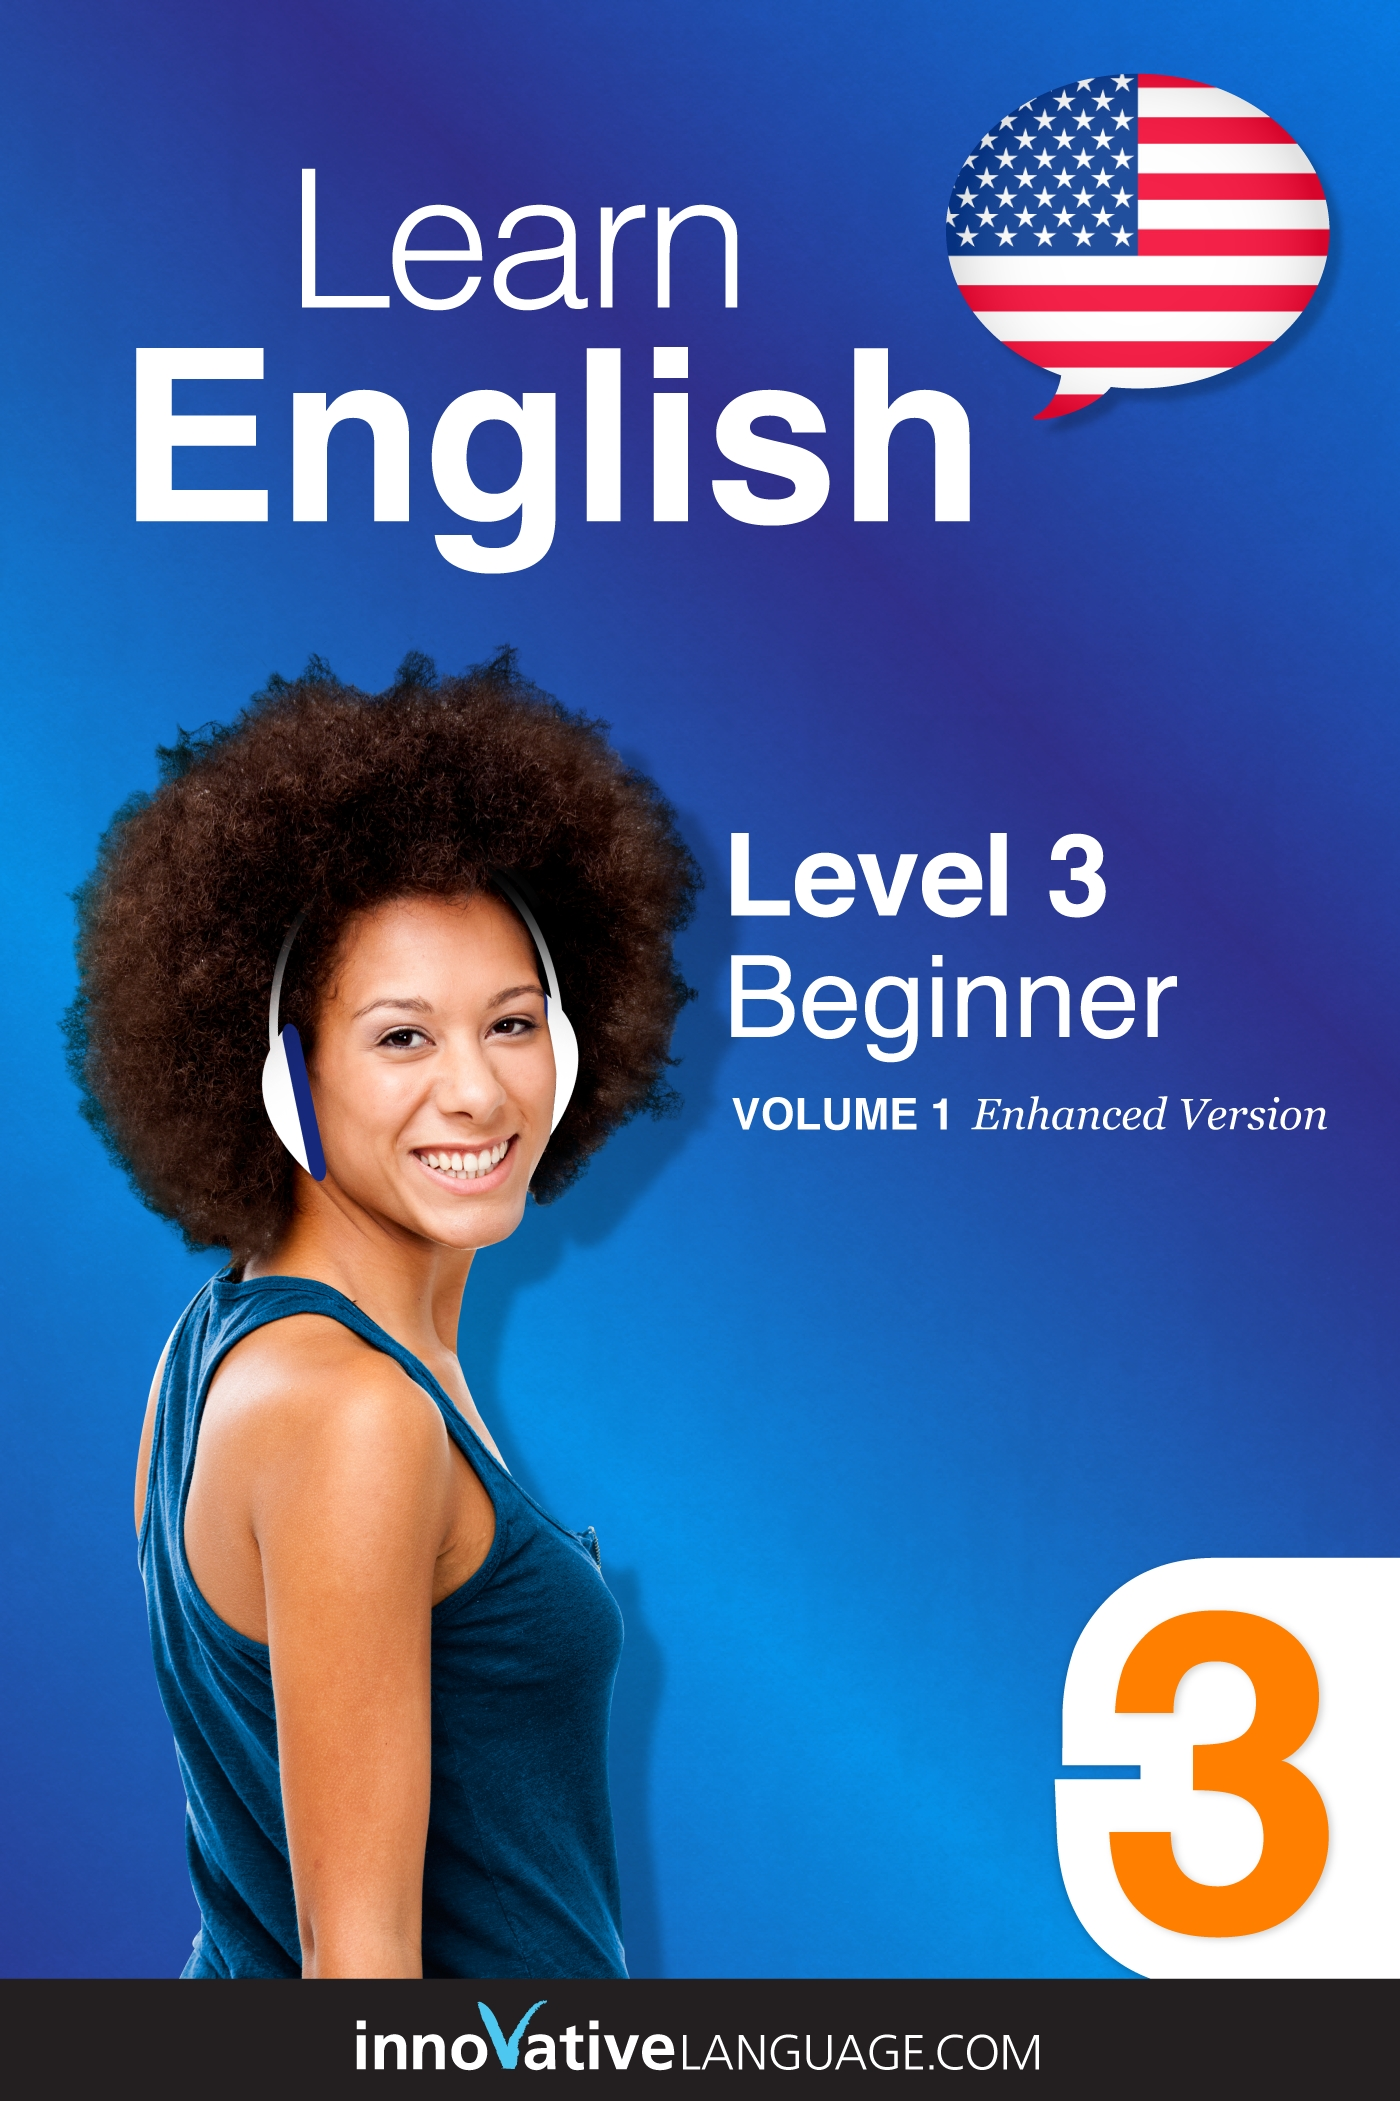 [eBook] Learn English - Level 3: Beginner